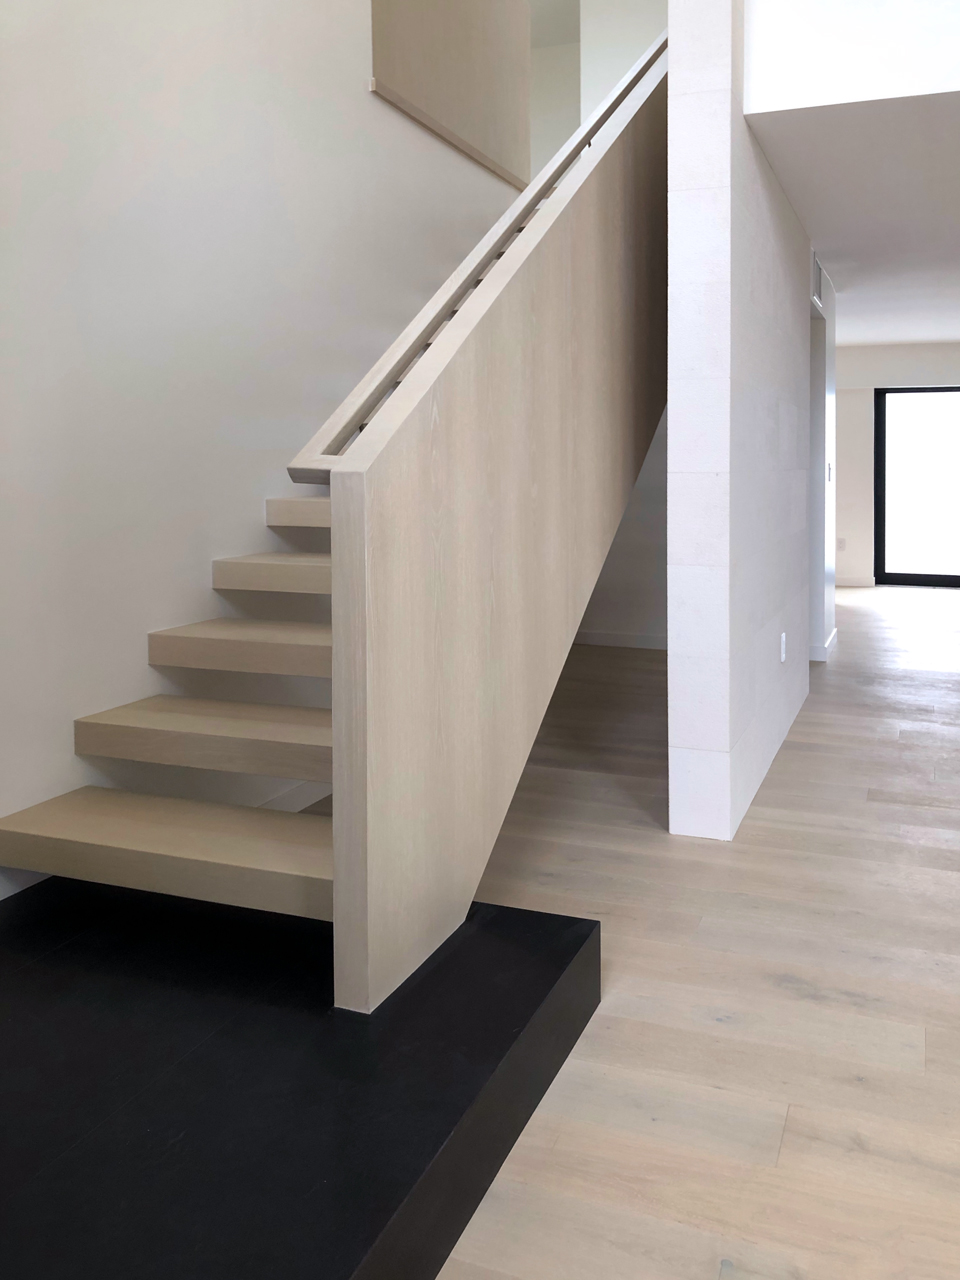 floating stair + basalt stone base / interior architecture